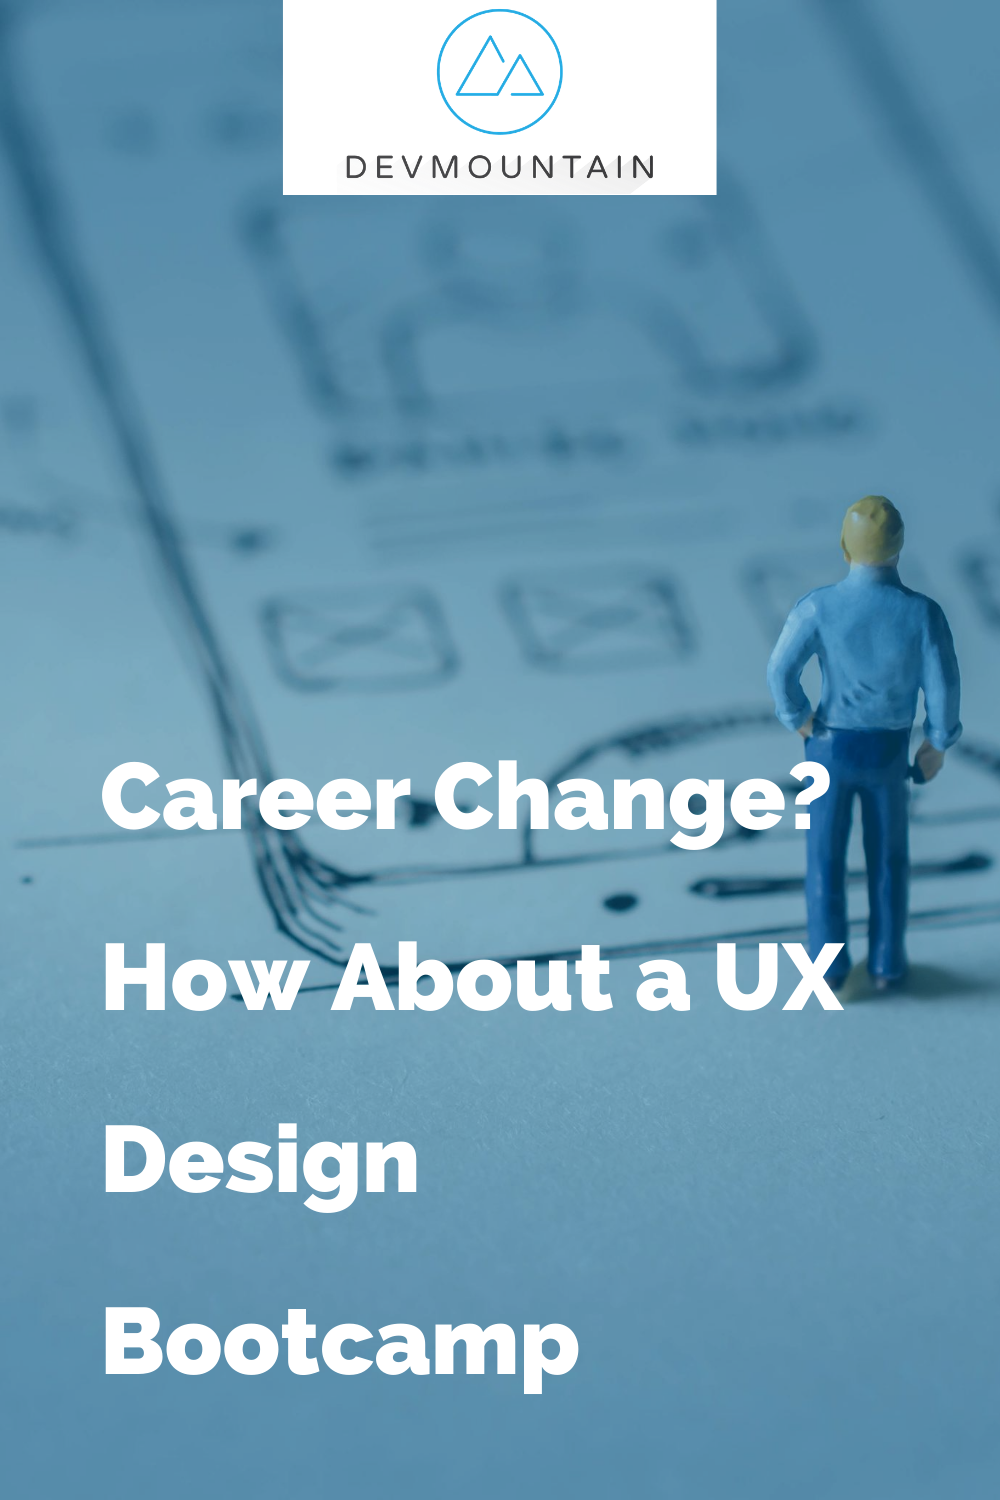 Career Change? How About a UX Design Bootcamp